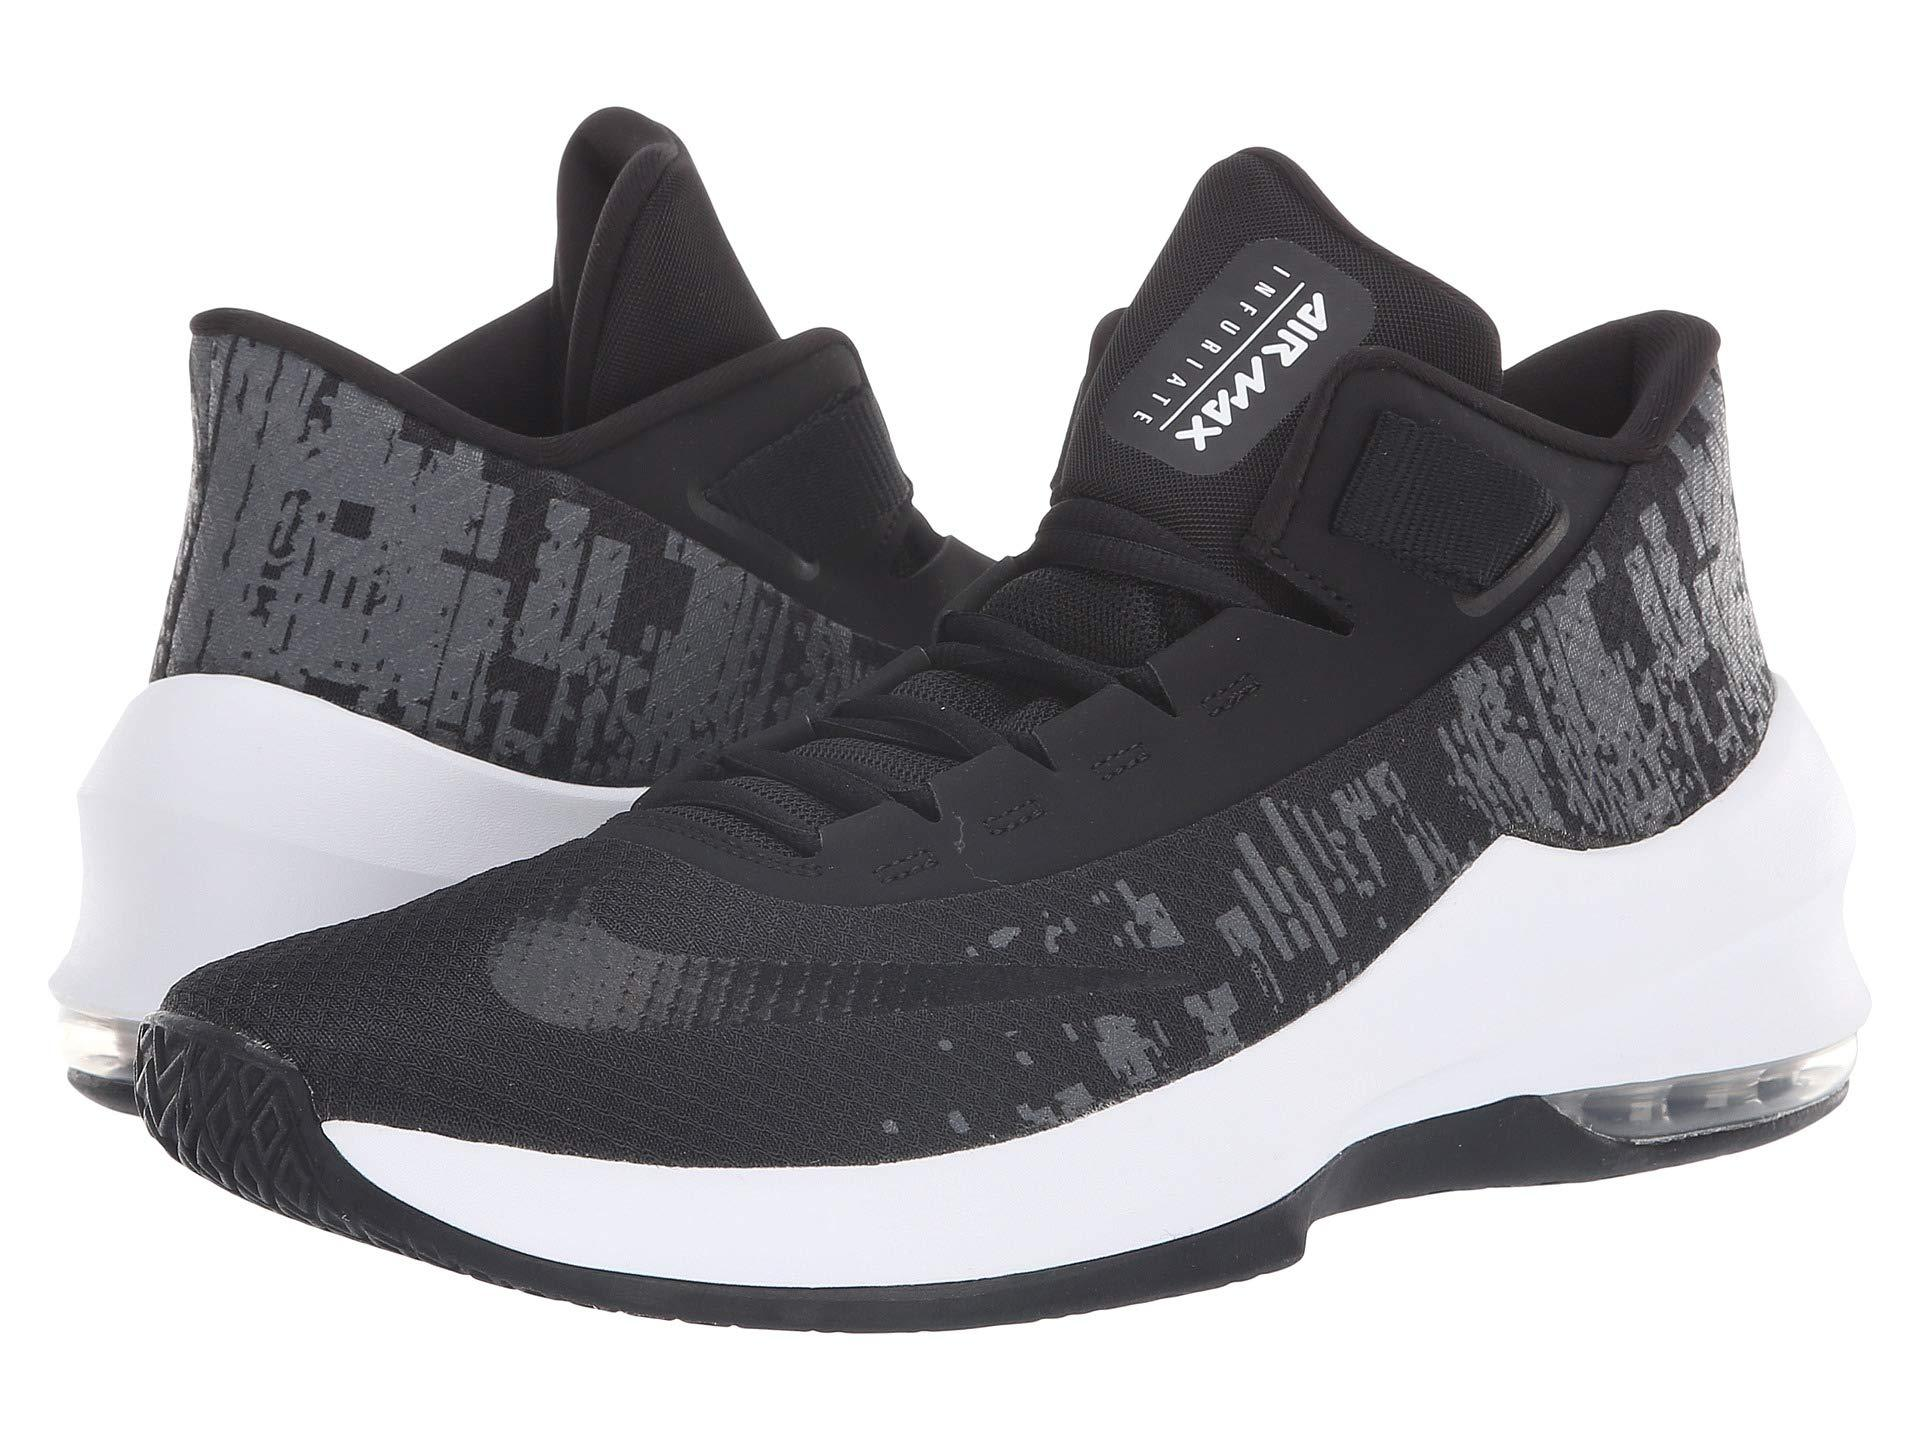 info for 9b107 027c6 Nike. Air Max Infuriate 2 Mid (anthracite metallic Gold black white) Men s Basketball  Shoes